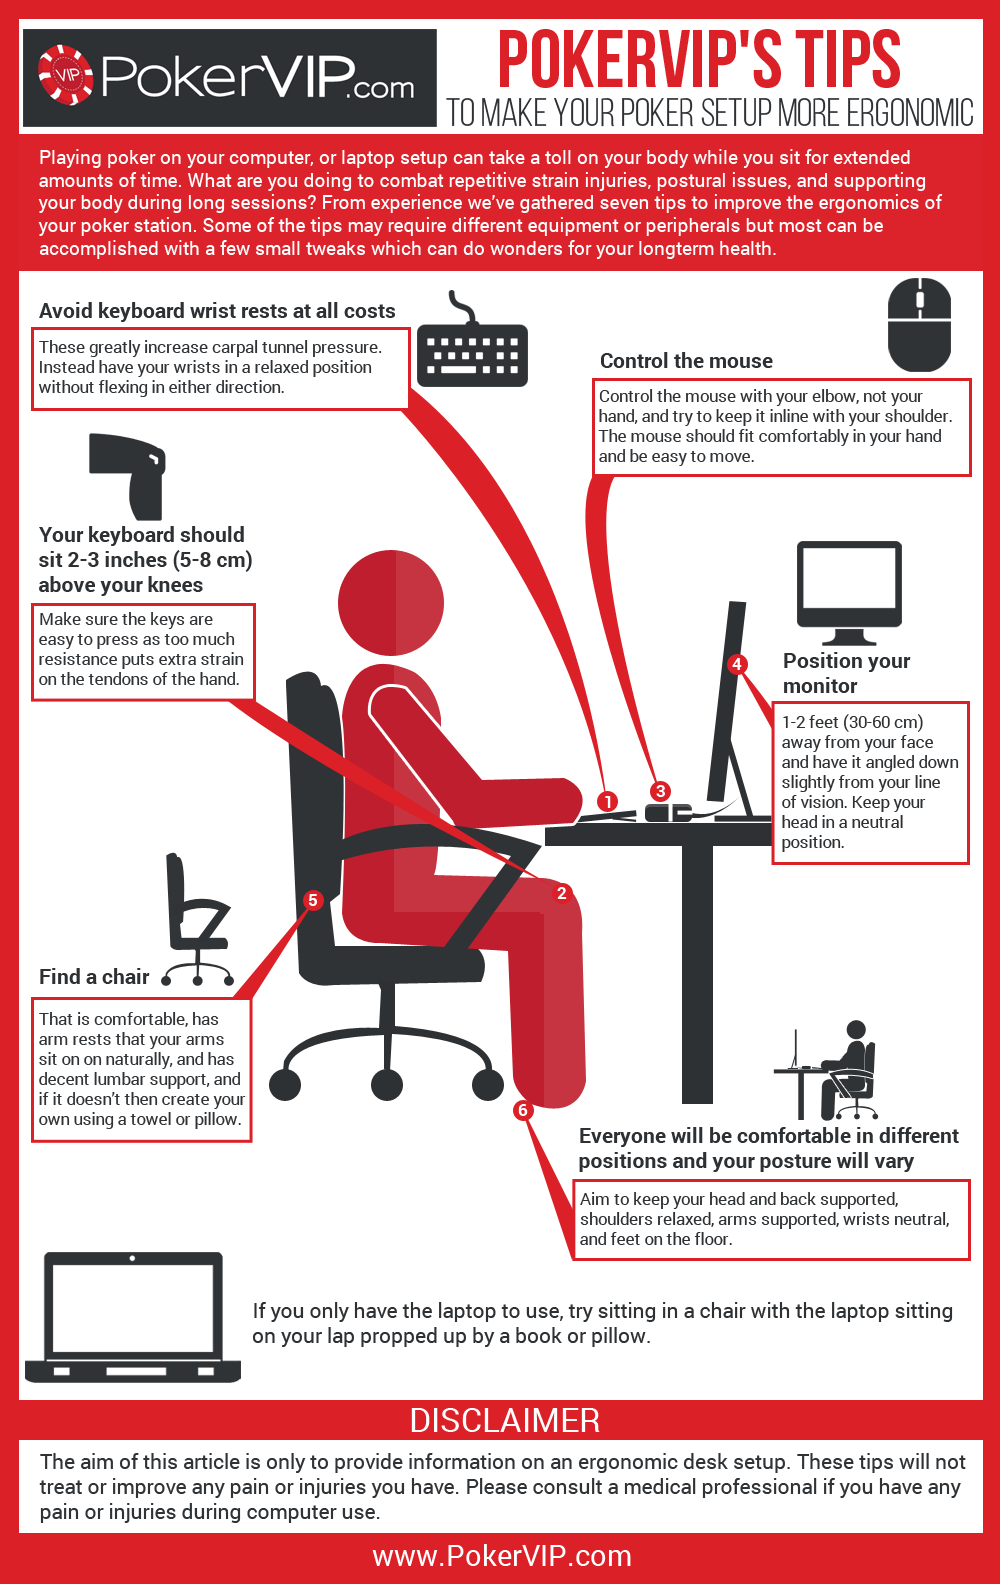 ergonomic chair keyboard position posture for make your poker setup more infographic pokervip